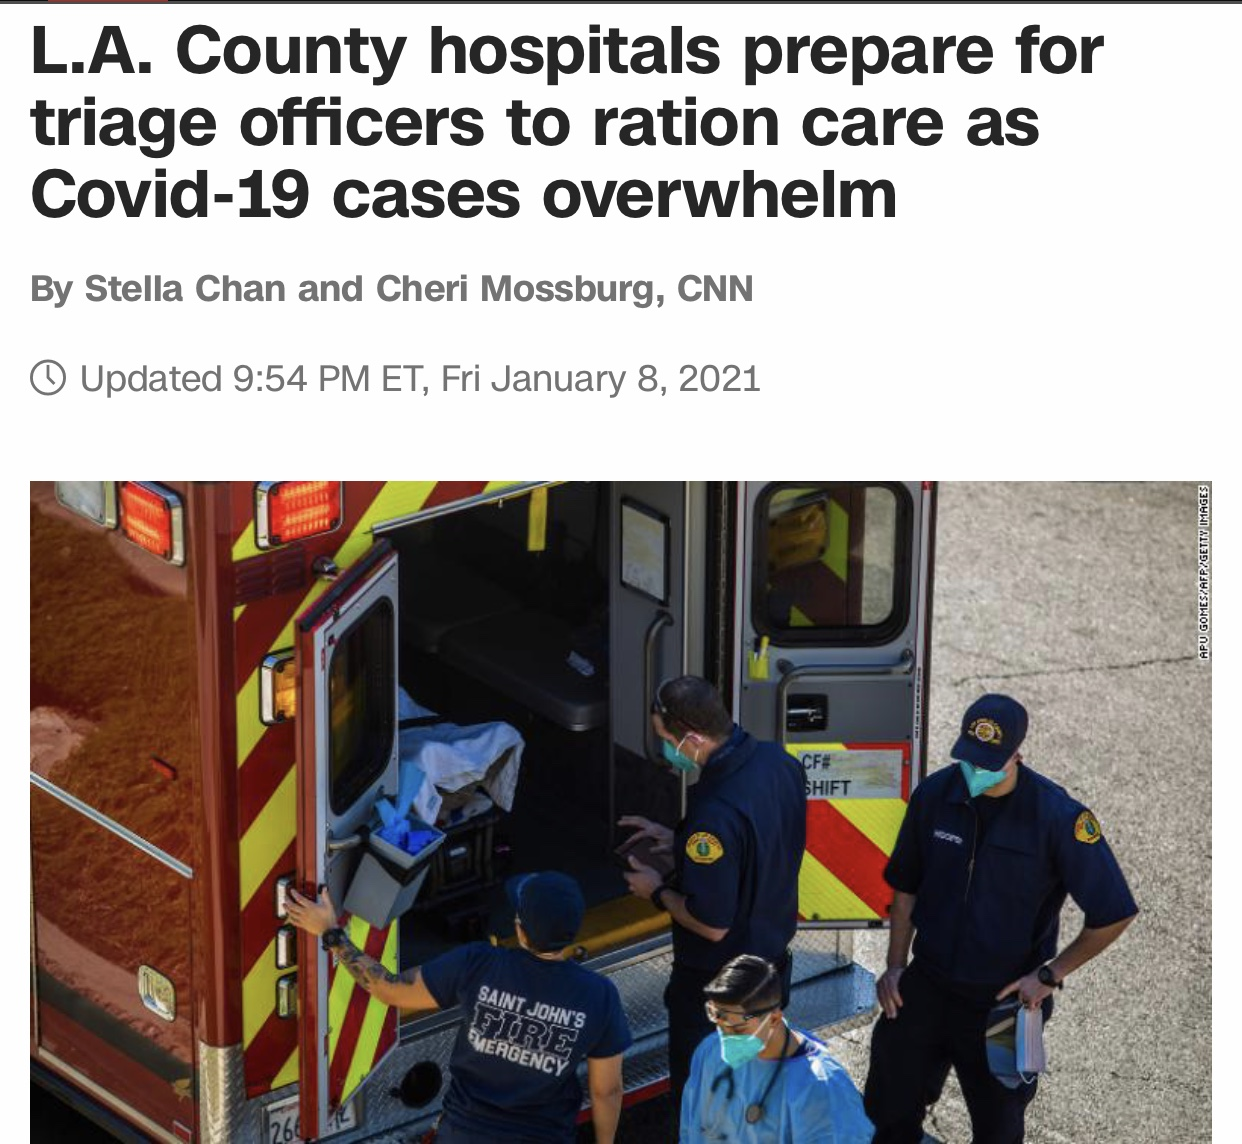 L.A. County hospitals prepare for triage officers to ration care as Covid-19 cases overwhelm